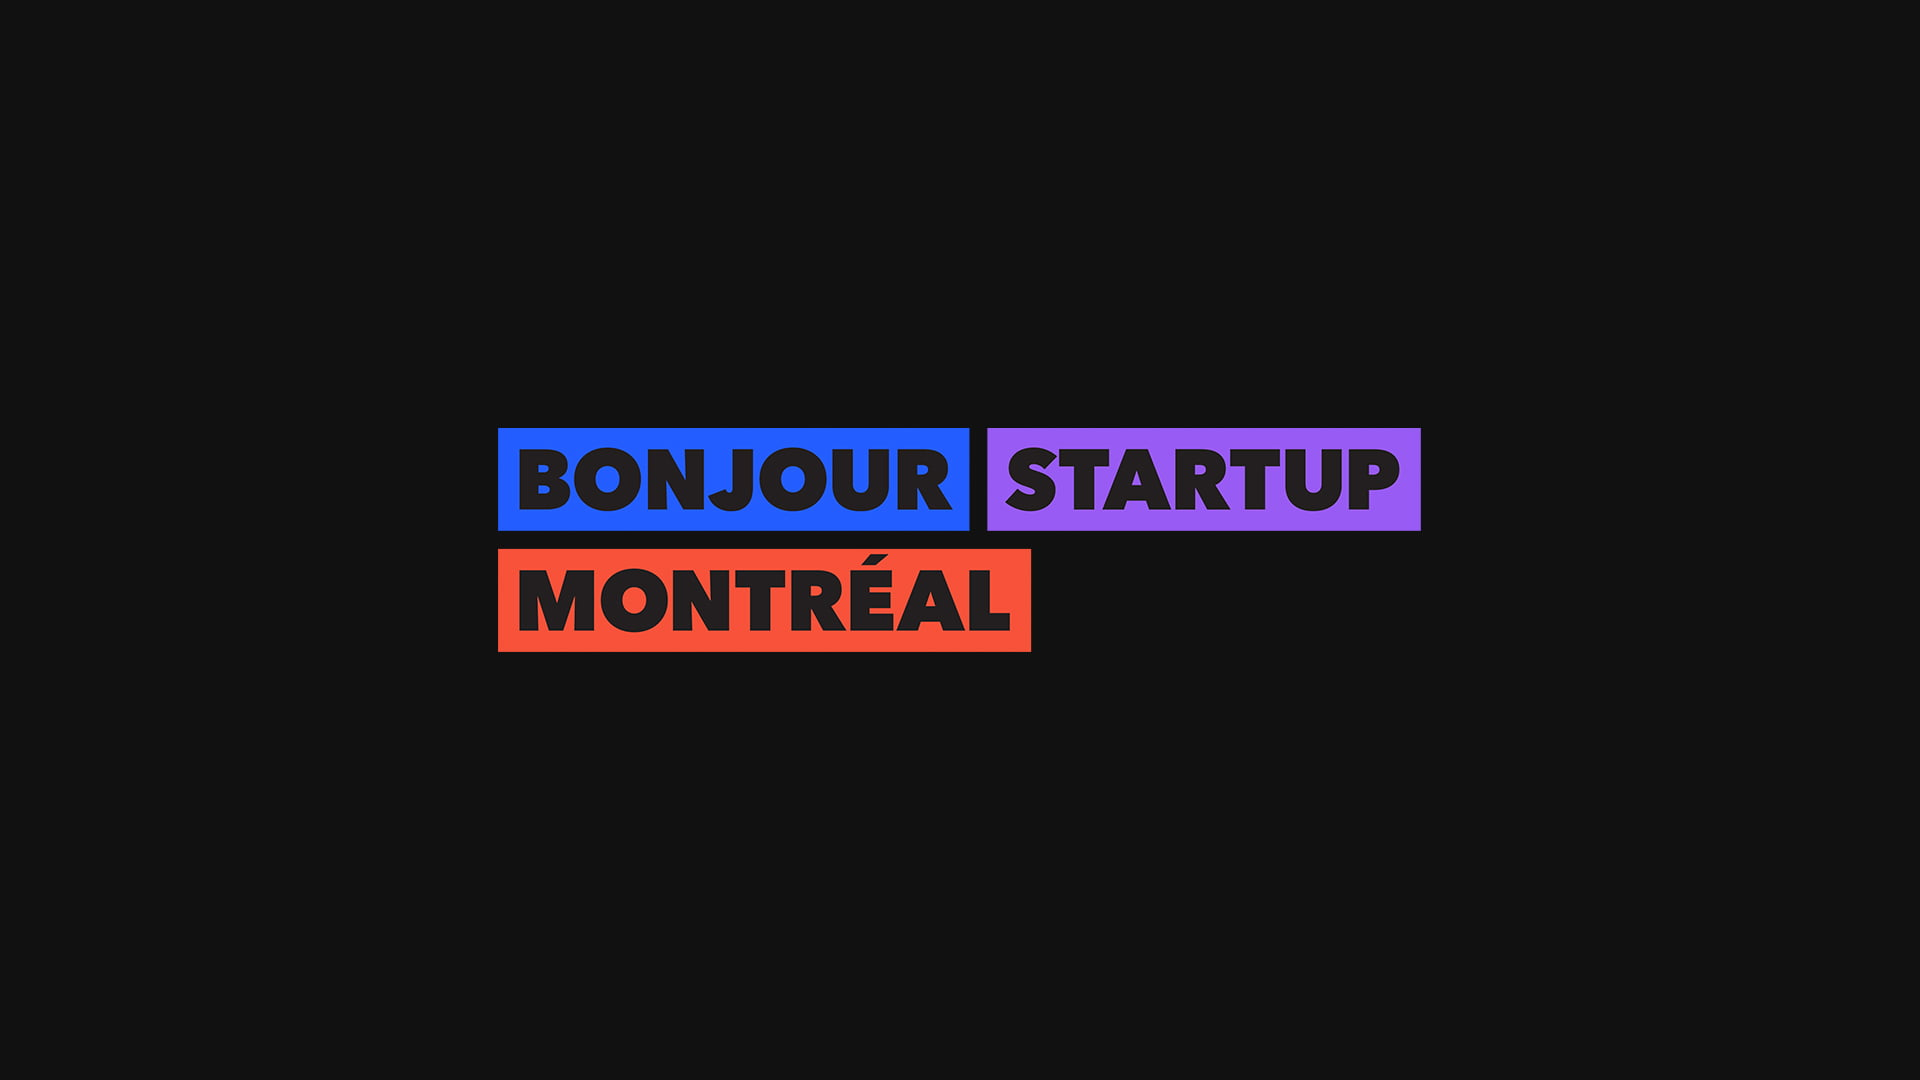 Launching Bonjour Startup Montréal: Positioning Montreal in the top 20 startup ecosystems worldwide